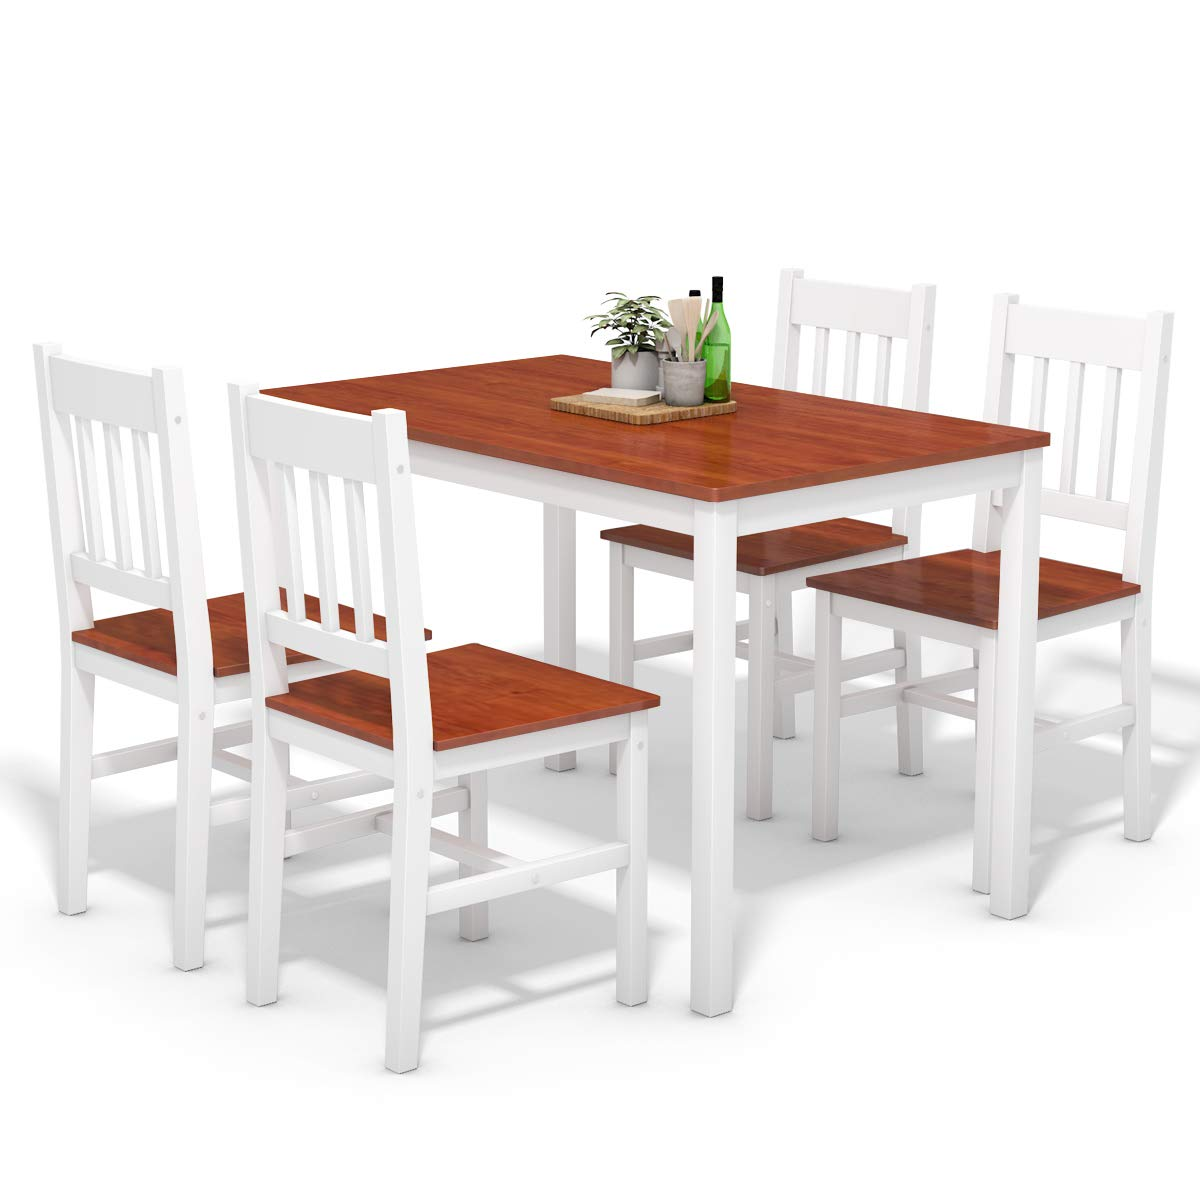 Giantex 5 Piece Wood Dining Table Set 4 Chairs Home Kitchen Breakfast Furniture (White&Walnut) by Giantex